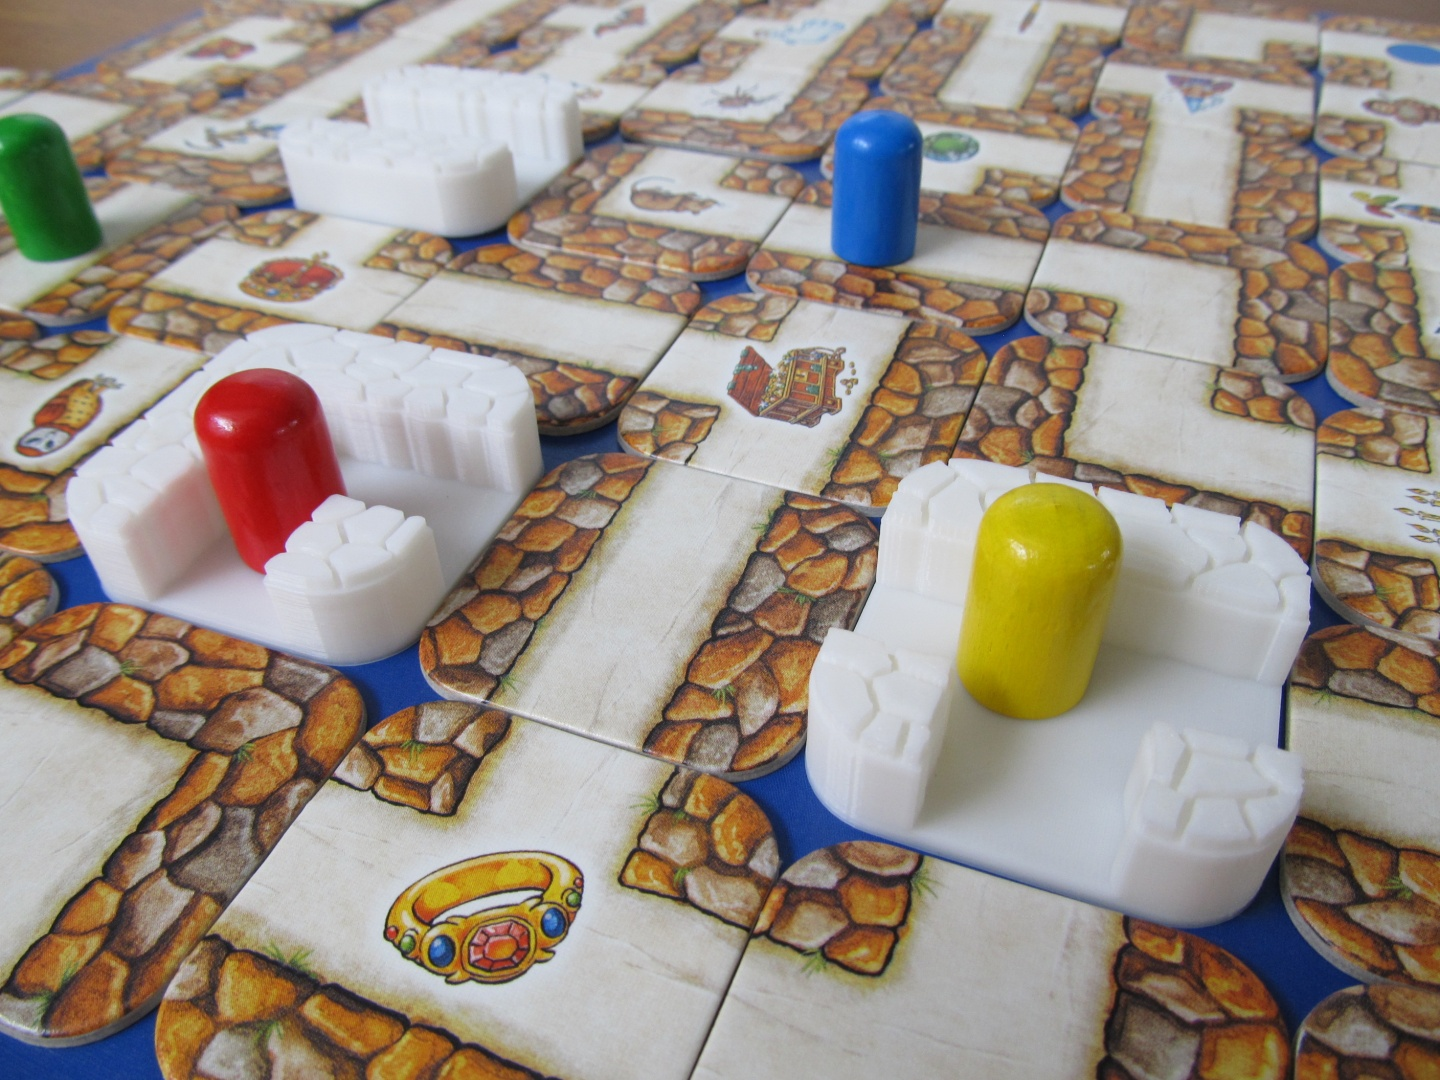 Custom 3D printed tiles for Labyrinth. Photo via MyMiniFactory.